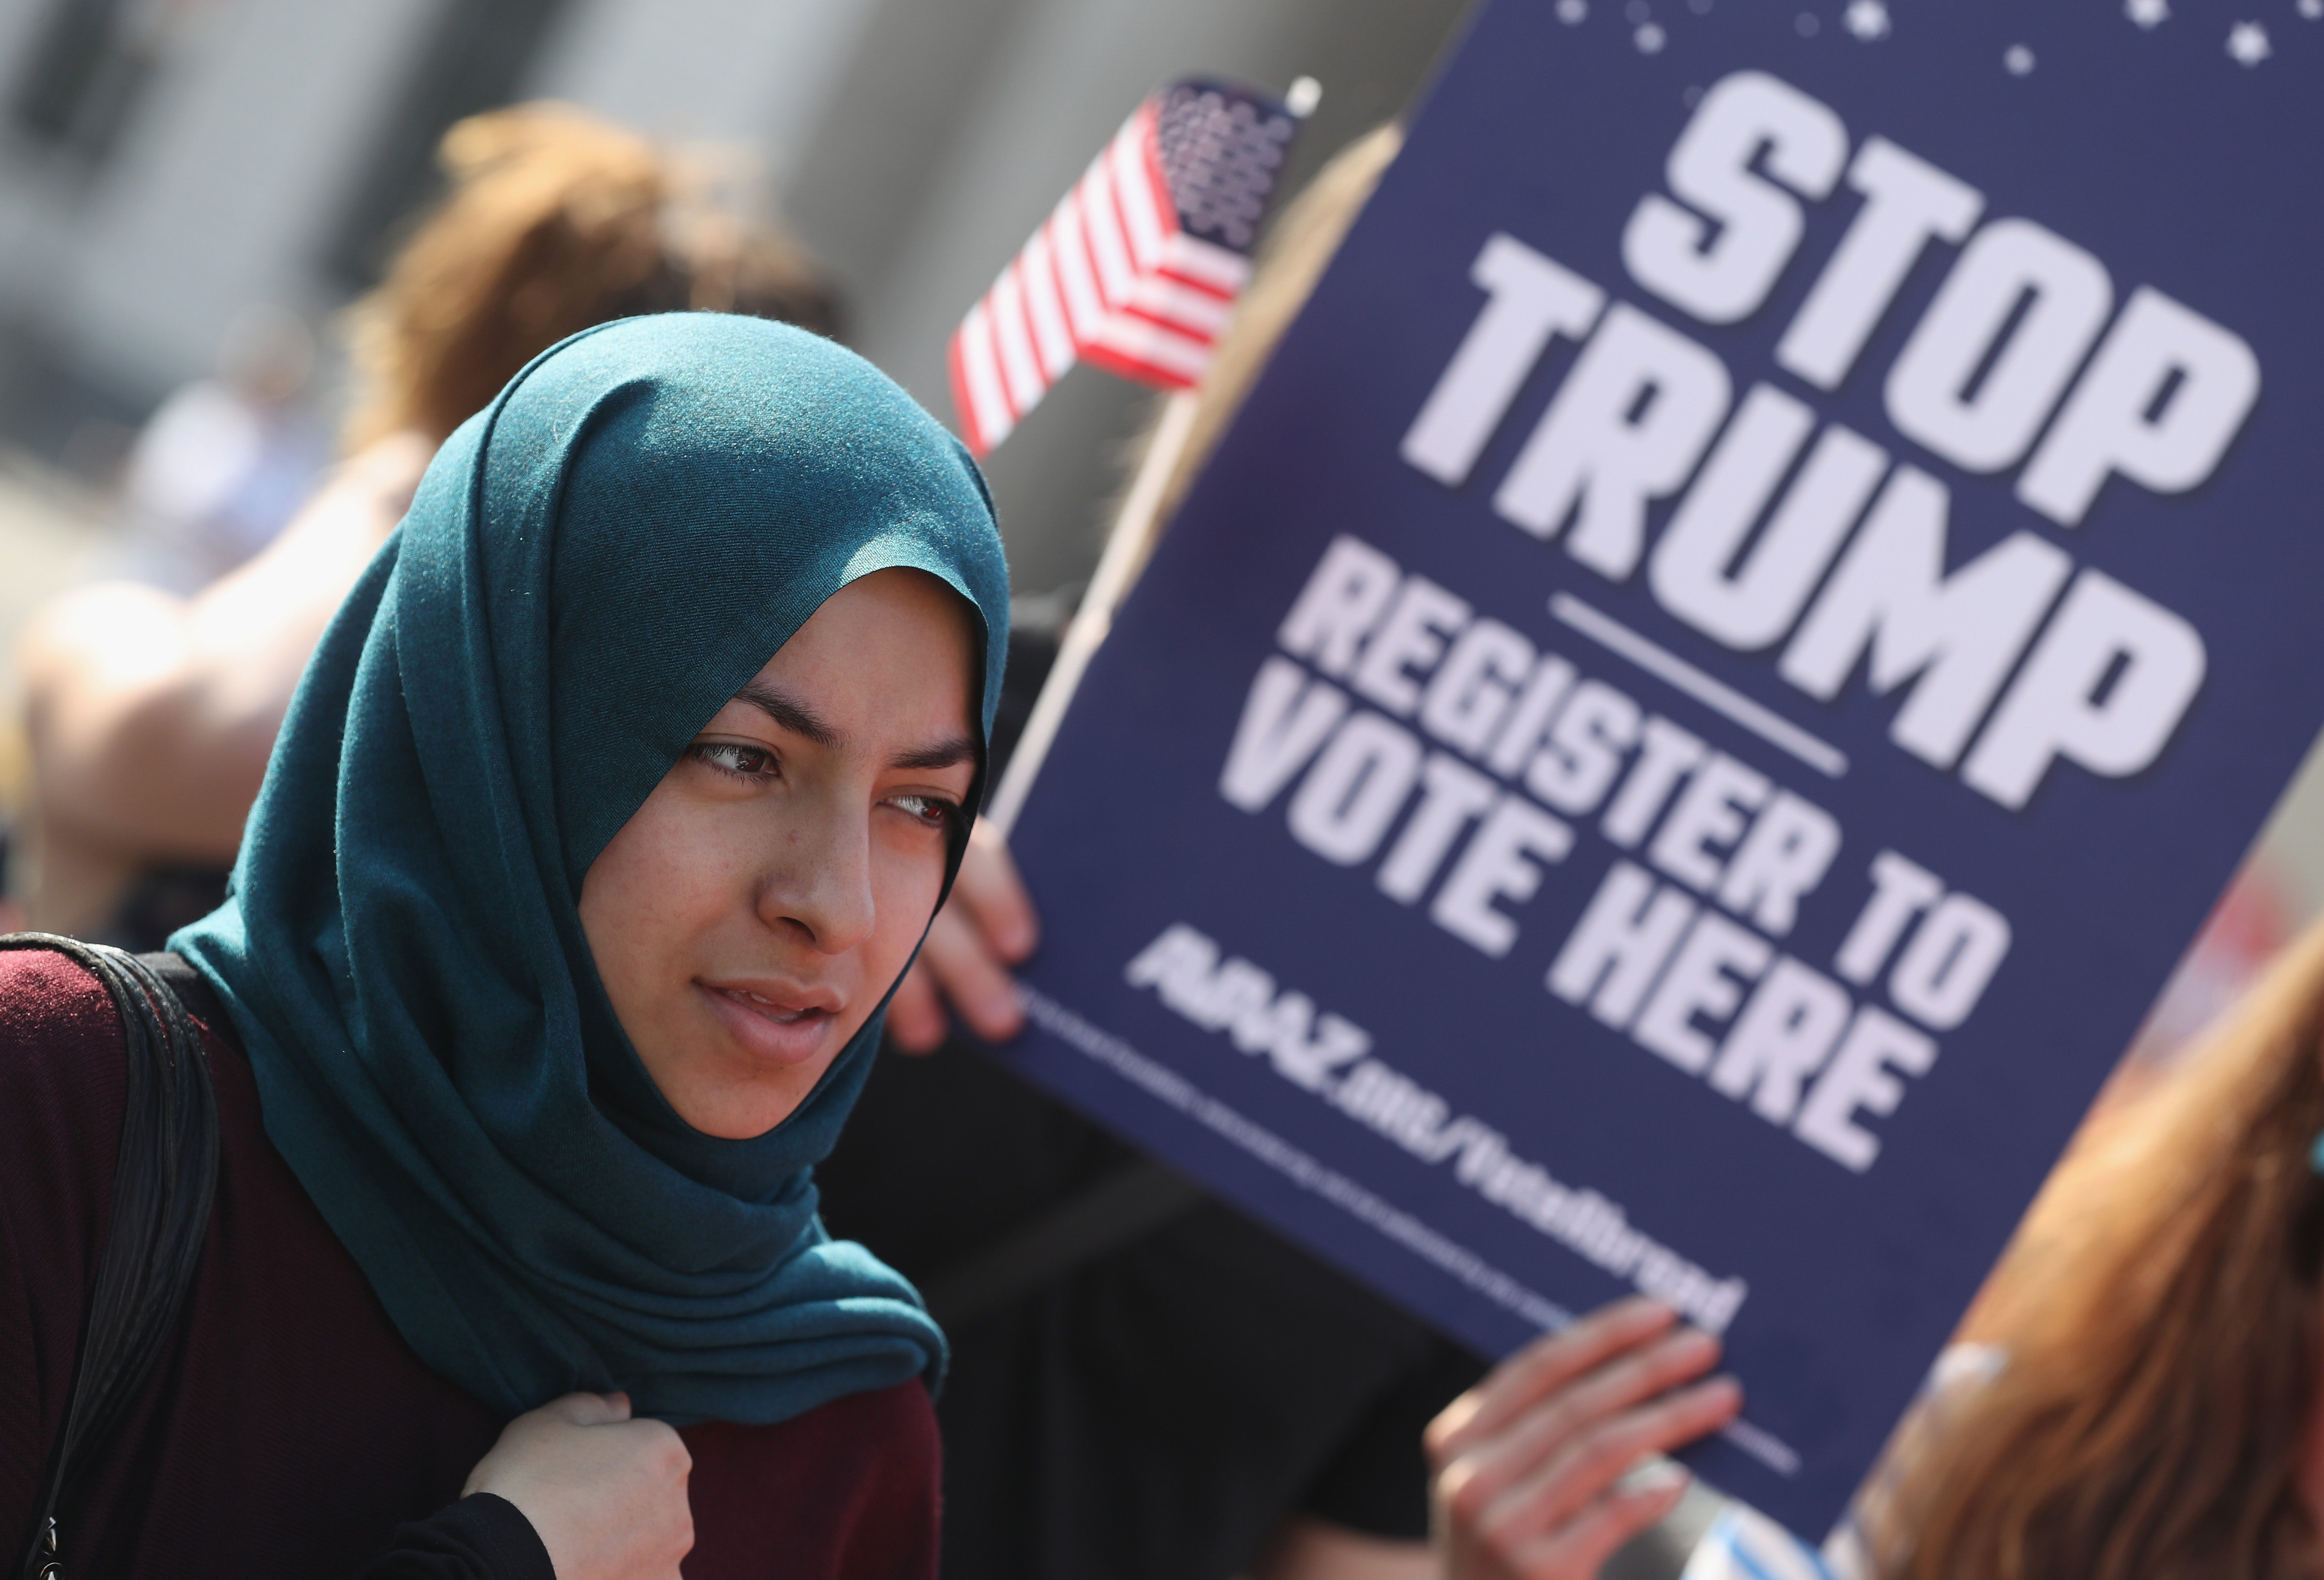 gallup muslim Eighty percent of muslim americans approve of the way barack obama is handling his job as president, according to a newly released survey conducted by the abu dhabi gallup center, a partnership between gallup and the crown prince court of abu dhabi.